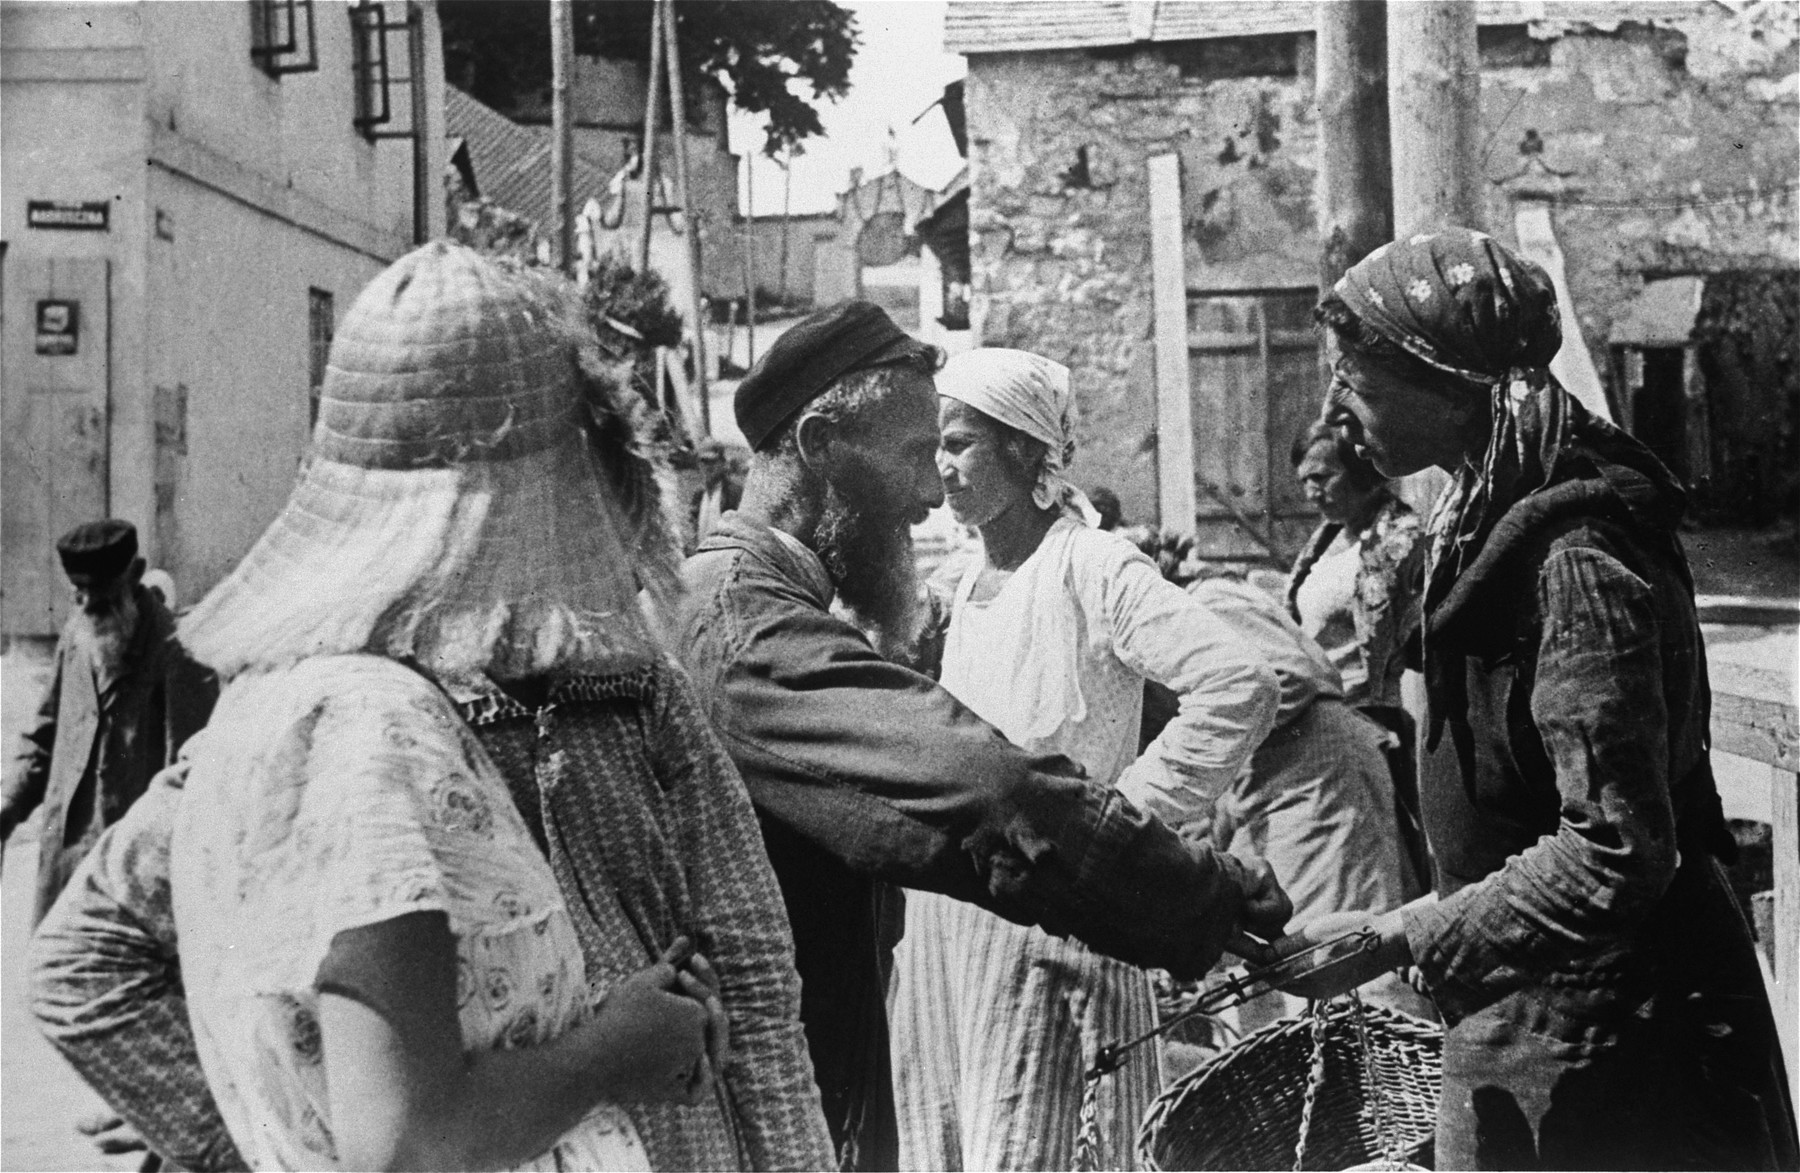 Close-up of Jews buying and selling in an open air market in Kazimierz Dolny